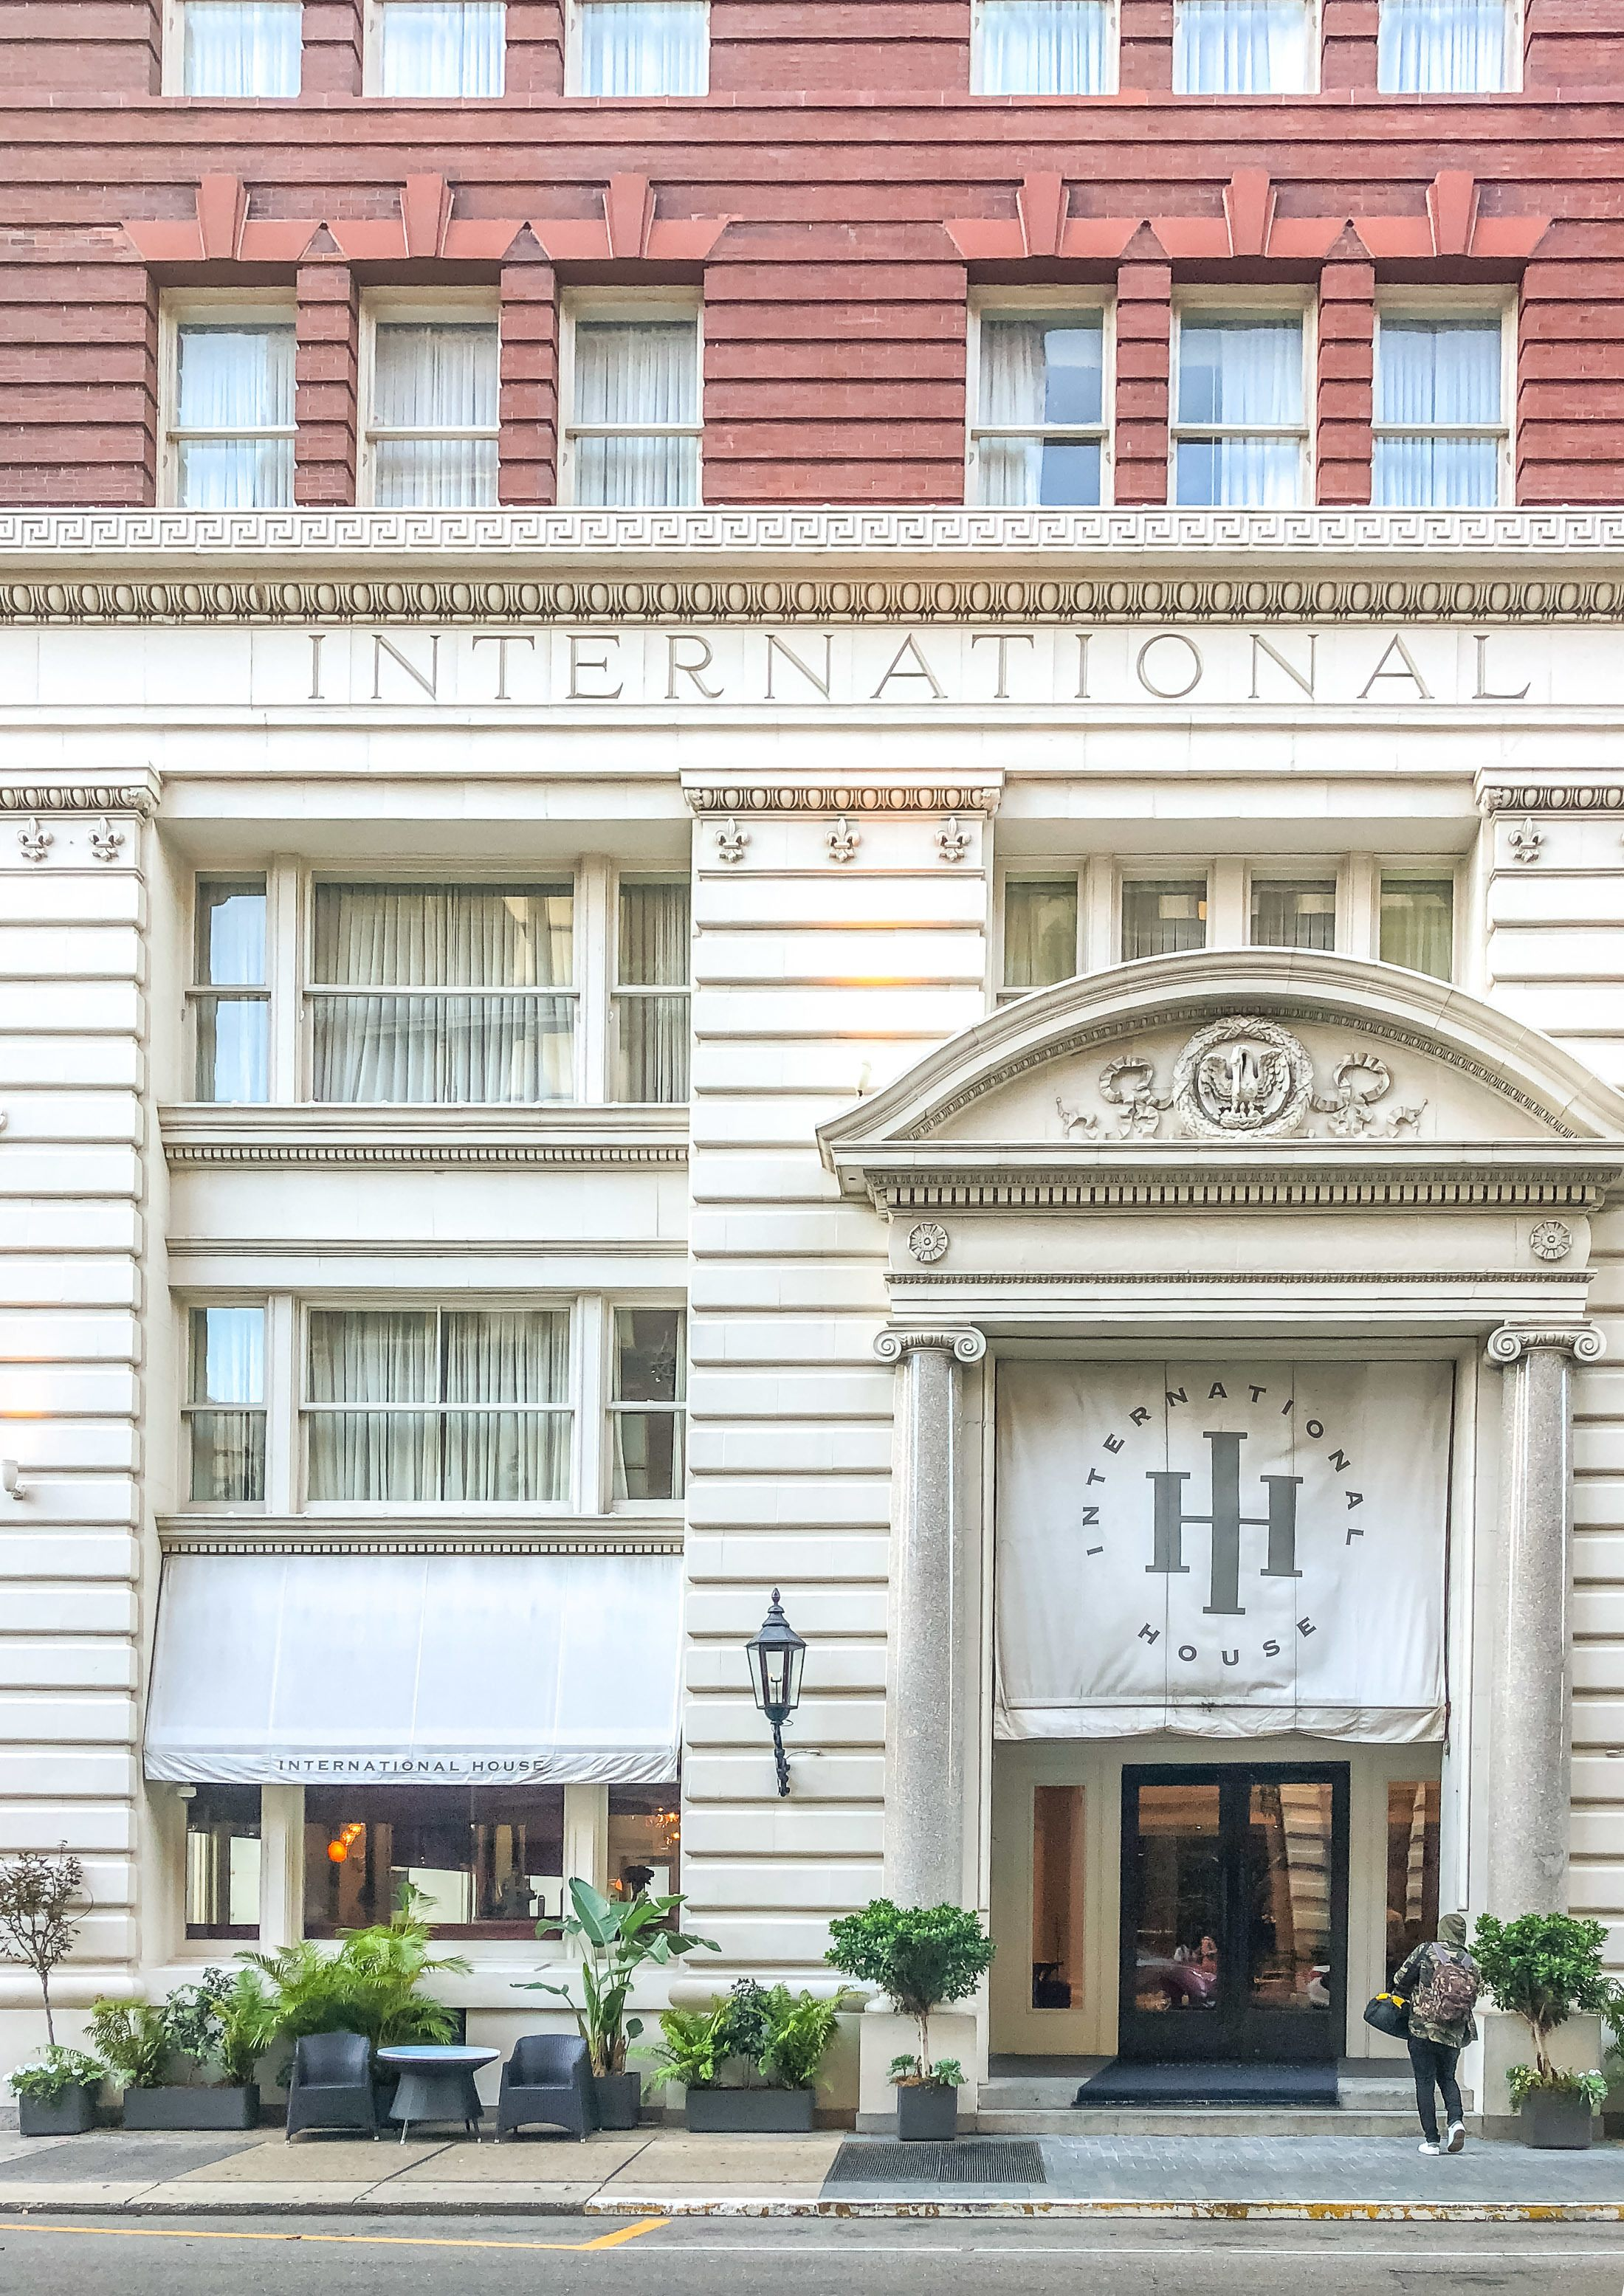 The international house new orleans review best new for Boutique hotel 3 lodz